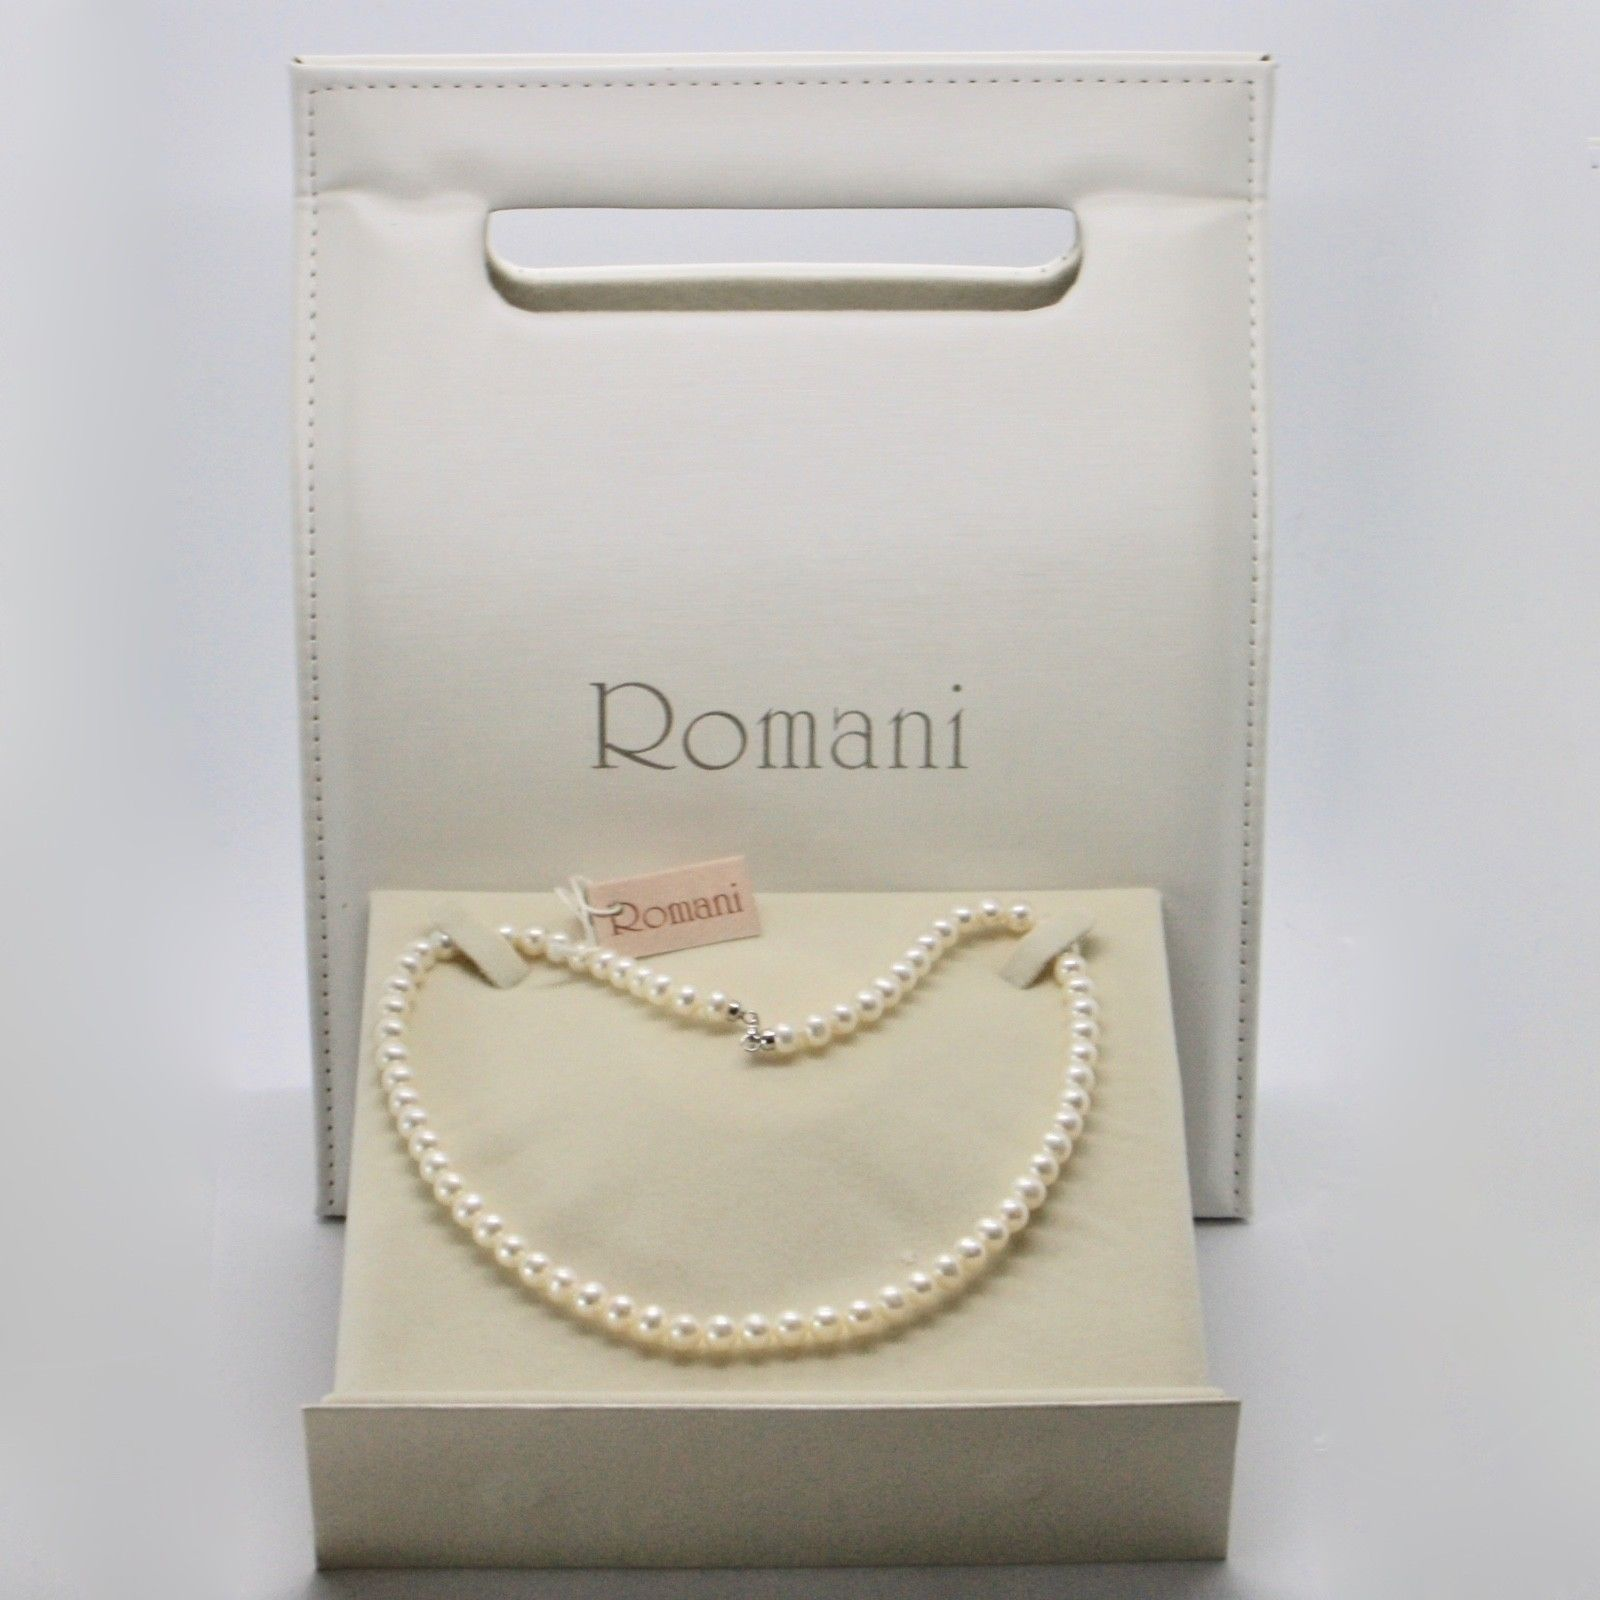 NECKLACE WHITE GOLD 18KT AND SILVER 925 WITH PEARLS 6 6.5 MM BEAUTIFUL BOX